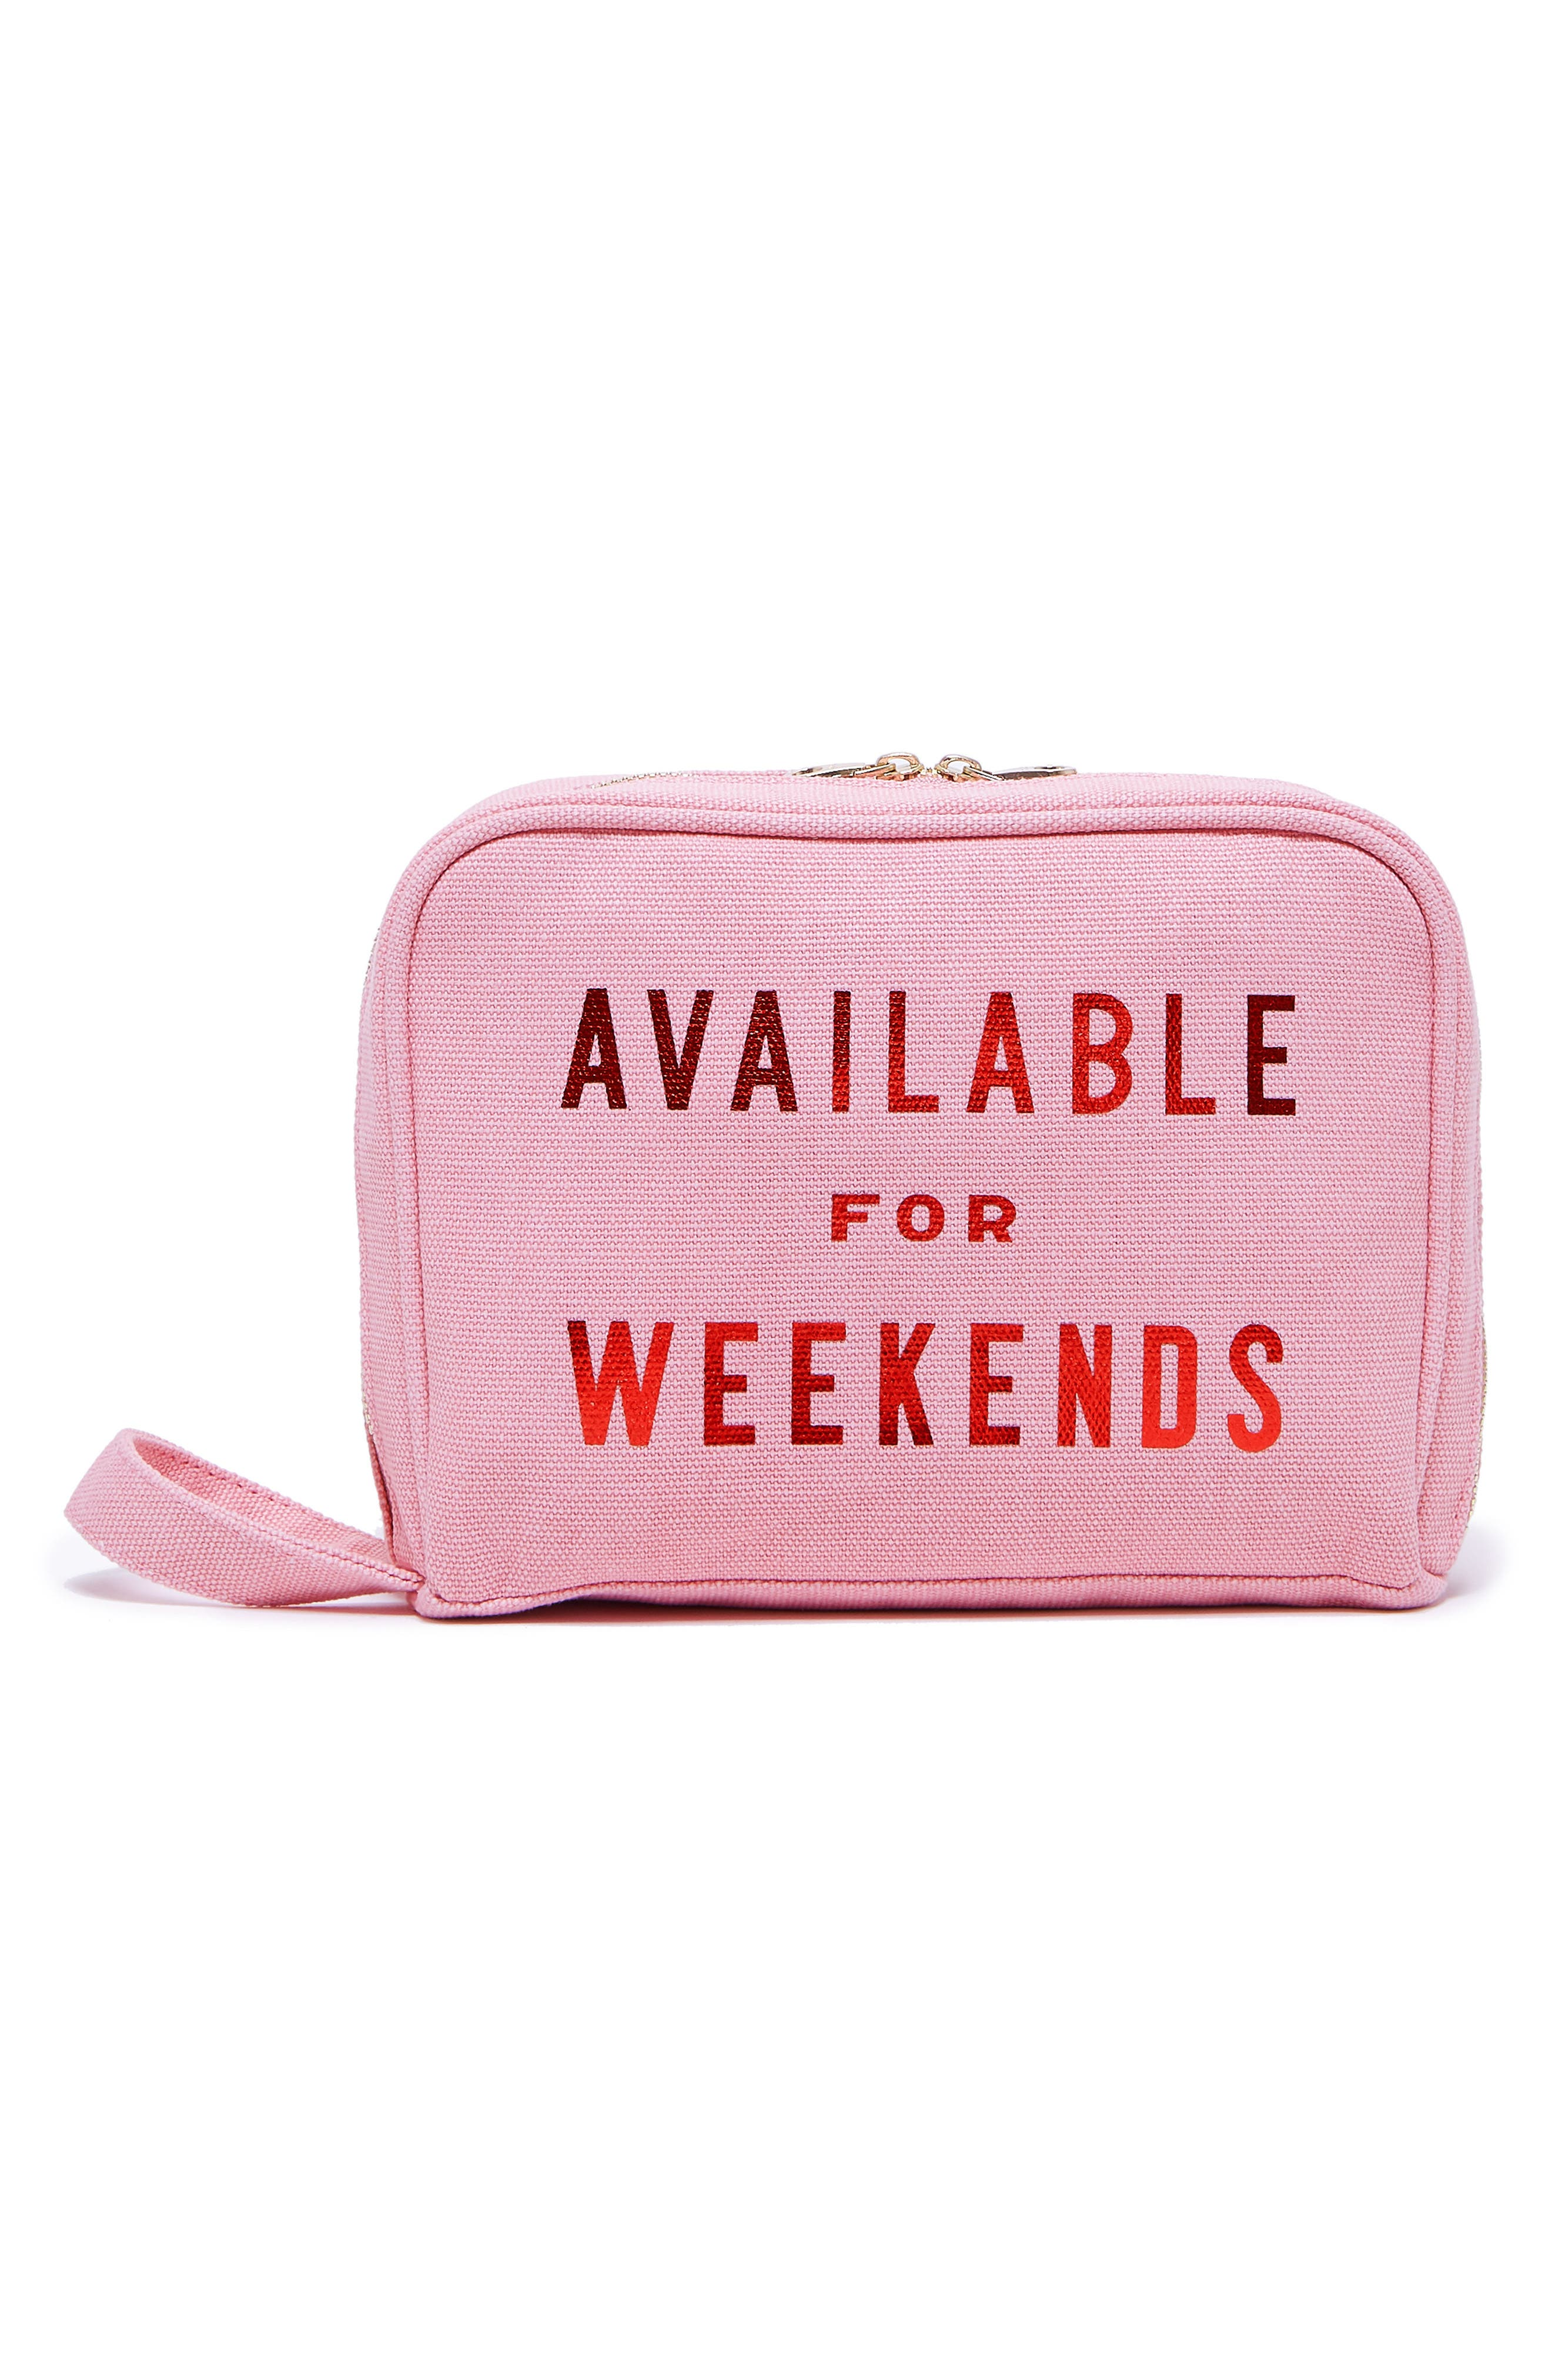 Available For Weekends Cosmetics Case,                         Main,                         color, 650